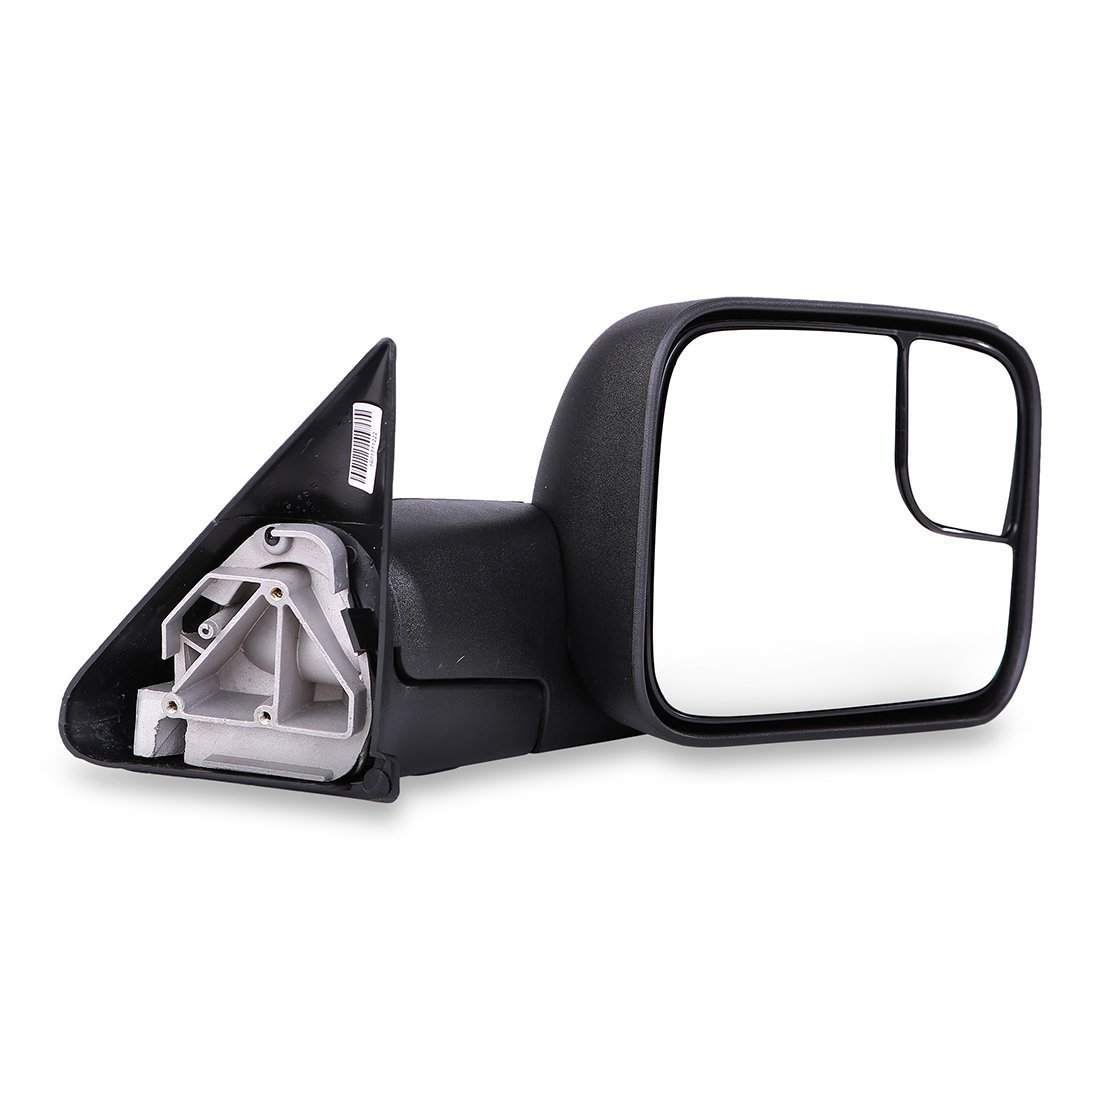 TOPPOWER For Dodge 94-01 Ram 1500 2500 3500 Pickup Truck Manual Towing Tow Mirror Left Driver and Right Passenger Pair (1994 1995 1996 1997 1998 1999 2000 2001)